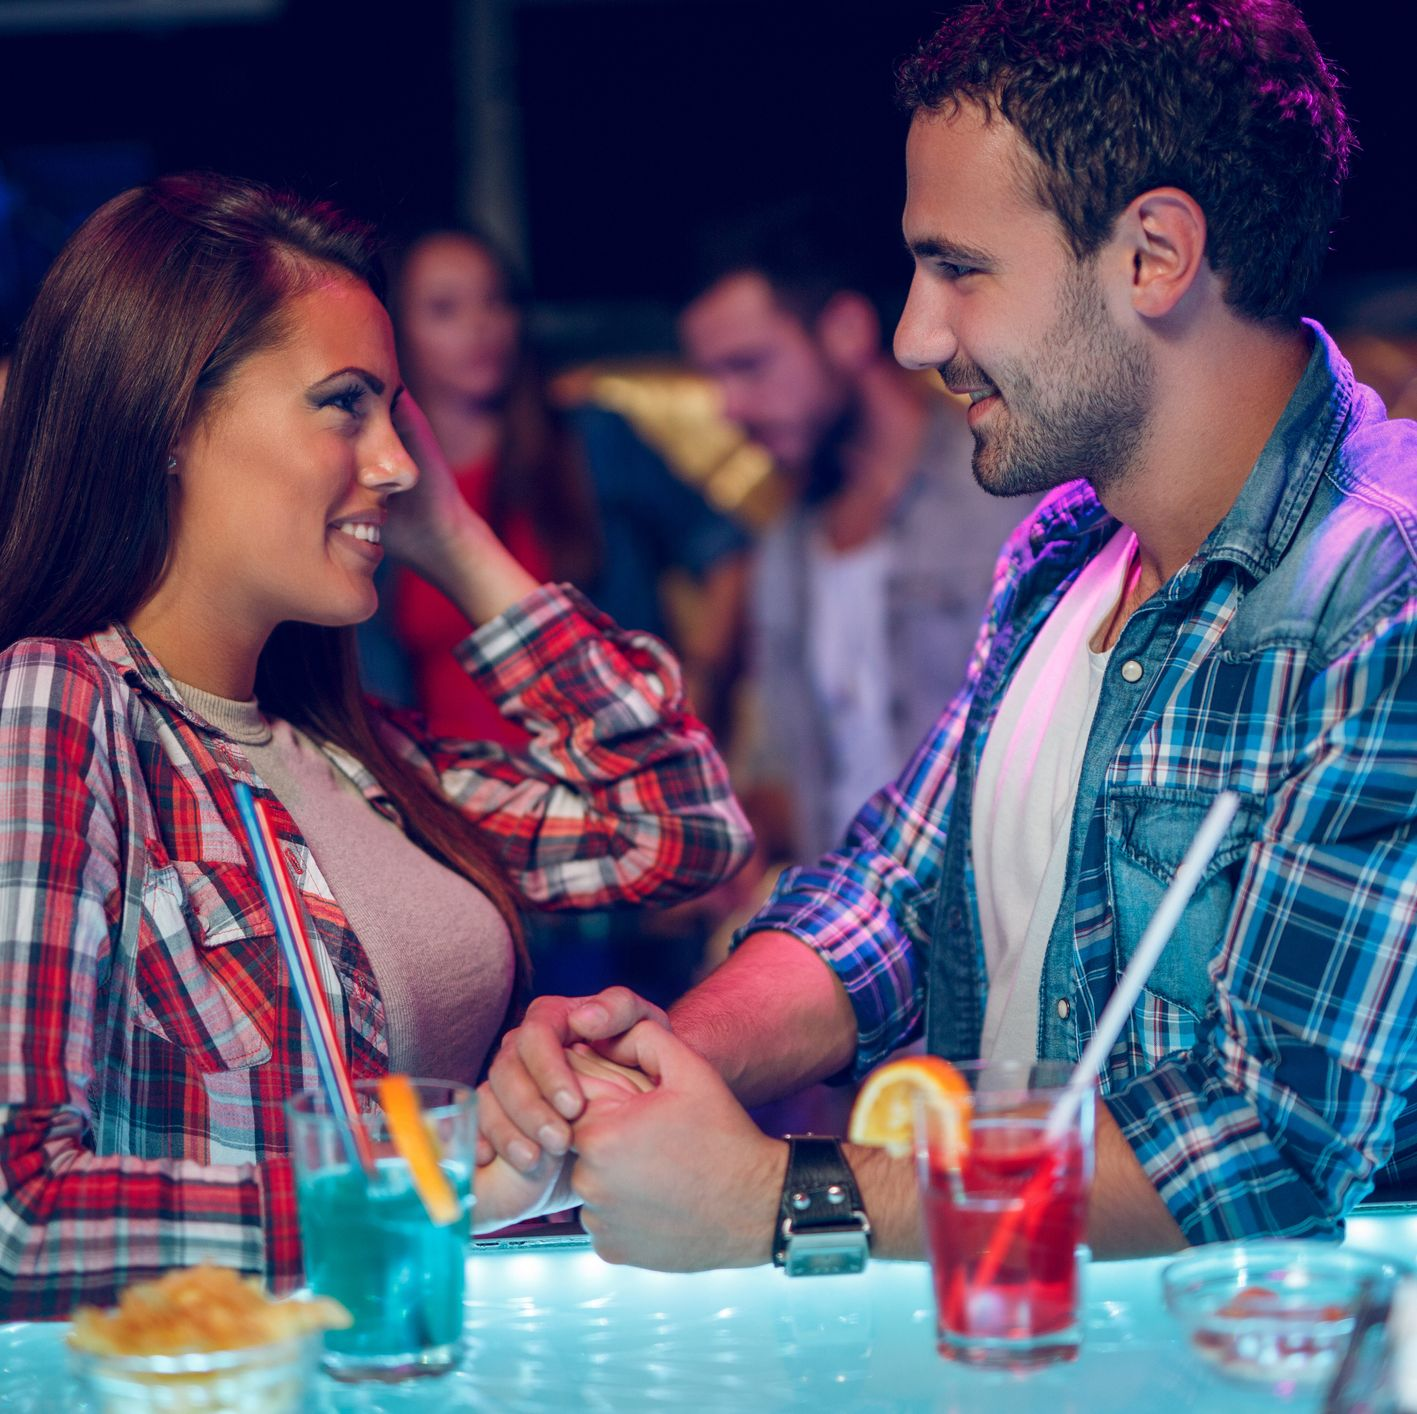 Young couple happily flirting over drinks at  night club